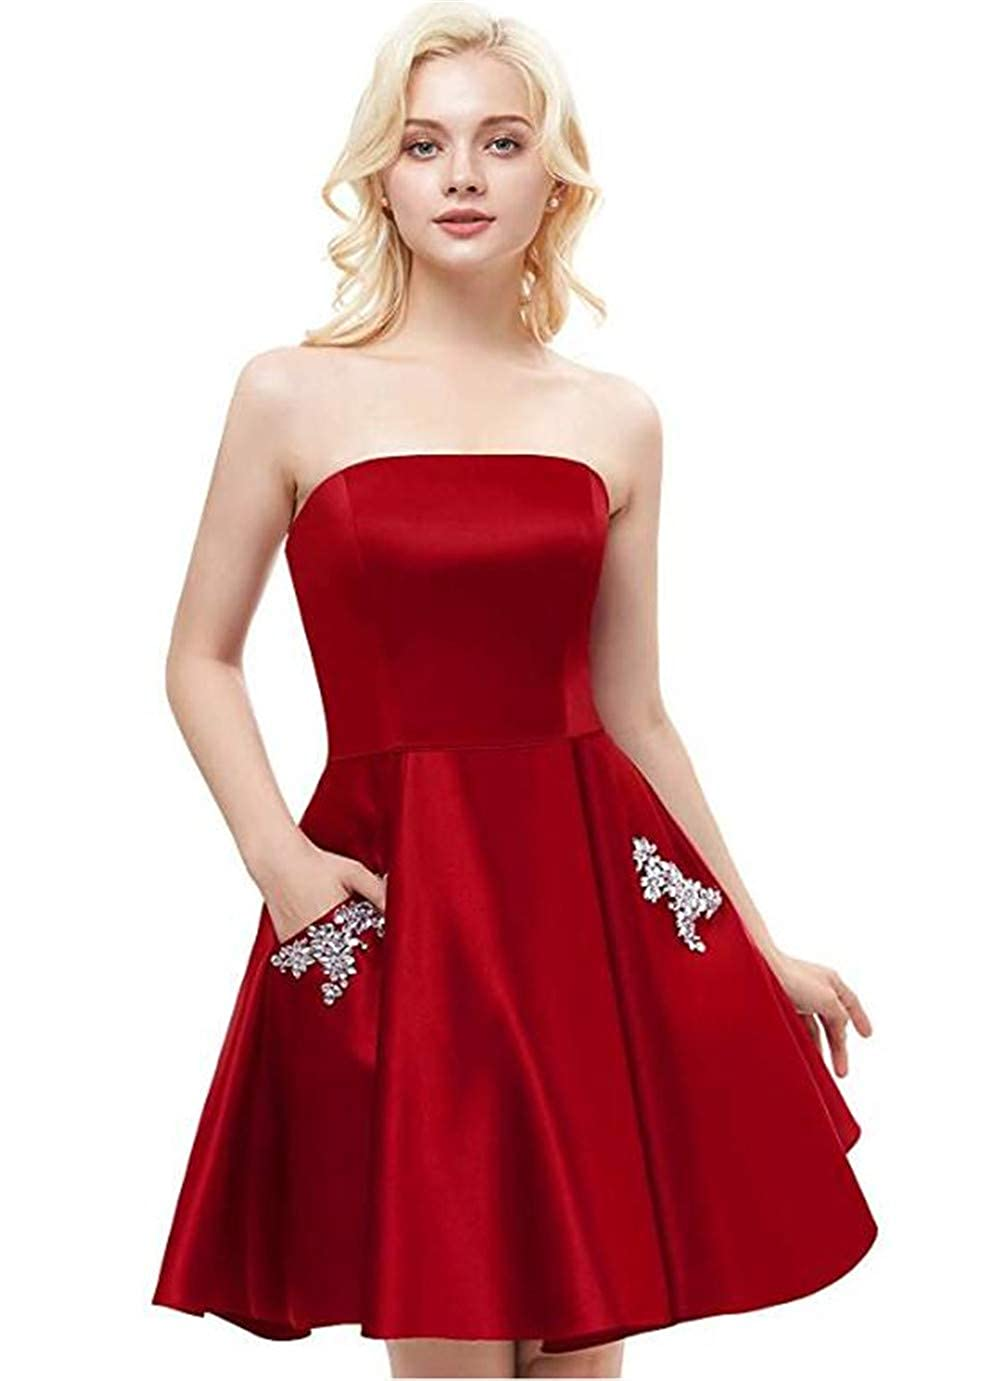 Yiweir Womens A-Line Strapless Homecoming Dresses 2019 Short Formal Bridesmaid Gowns with Beaded Pockets YH001